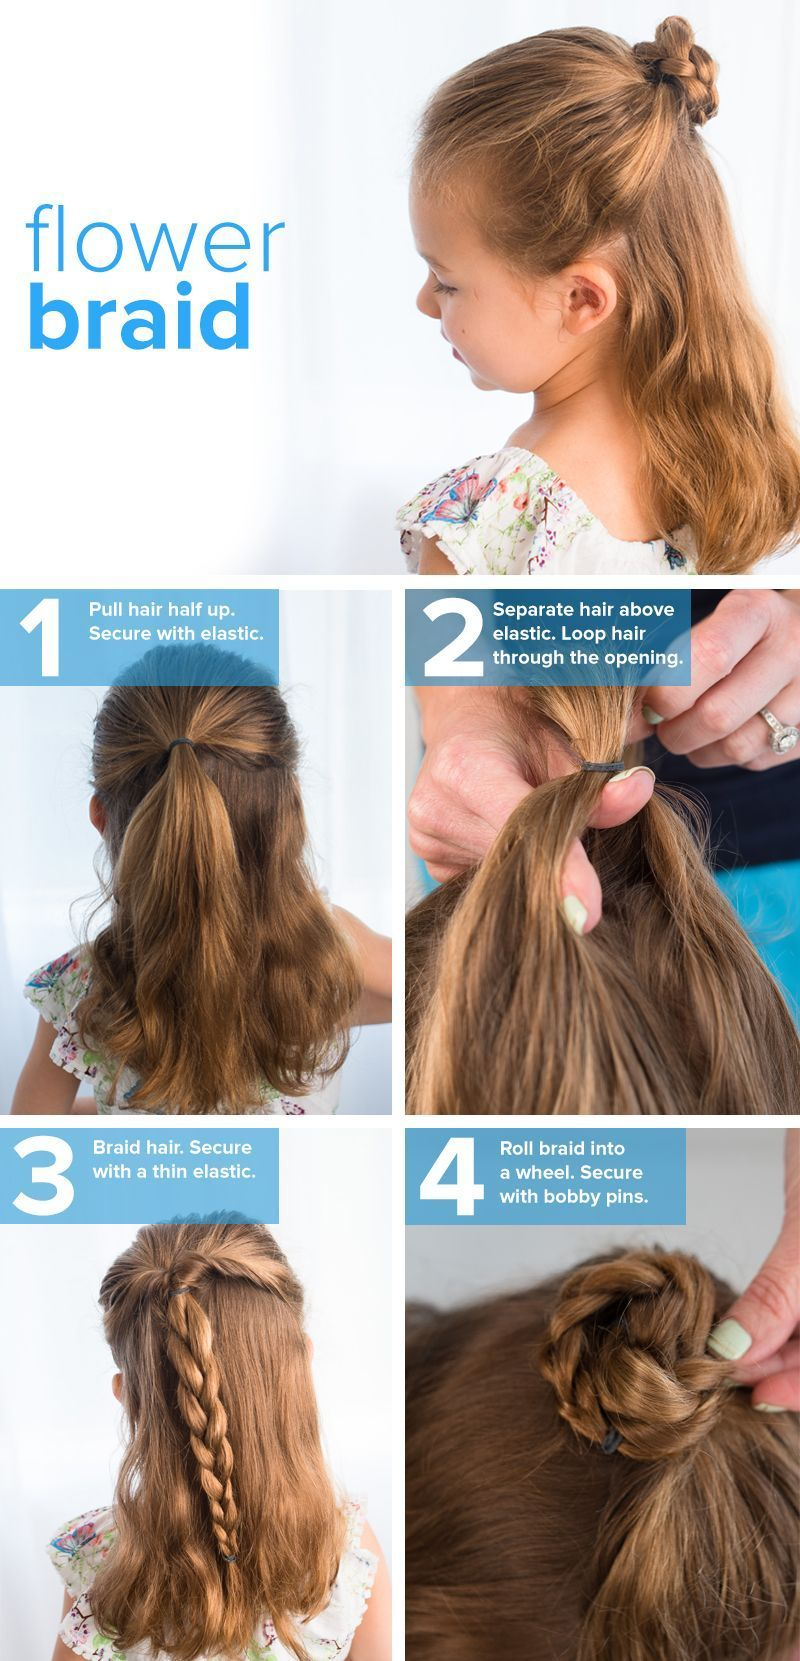 Try this easy flower braid for kids itus a simple hairstyle that